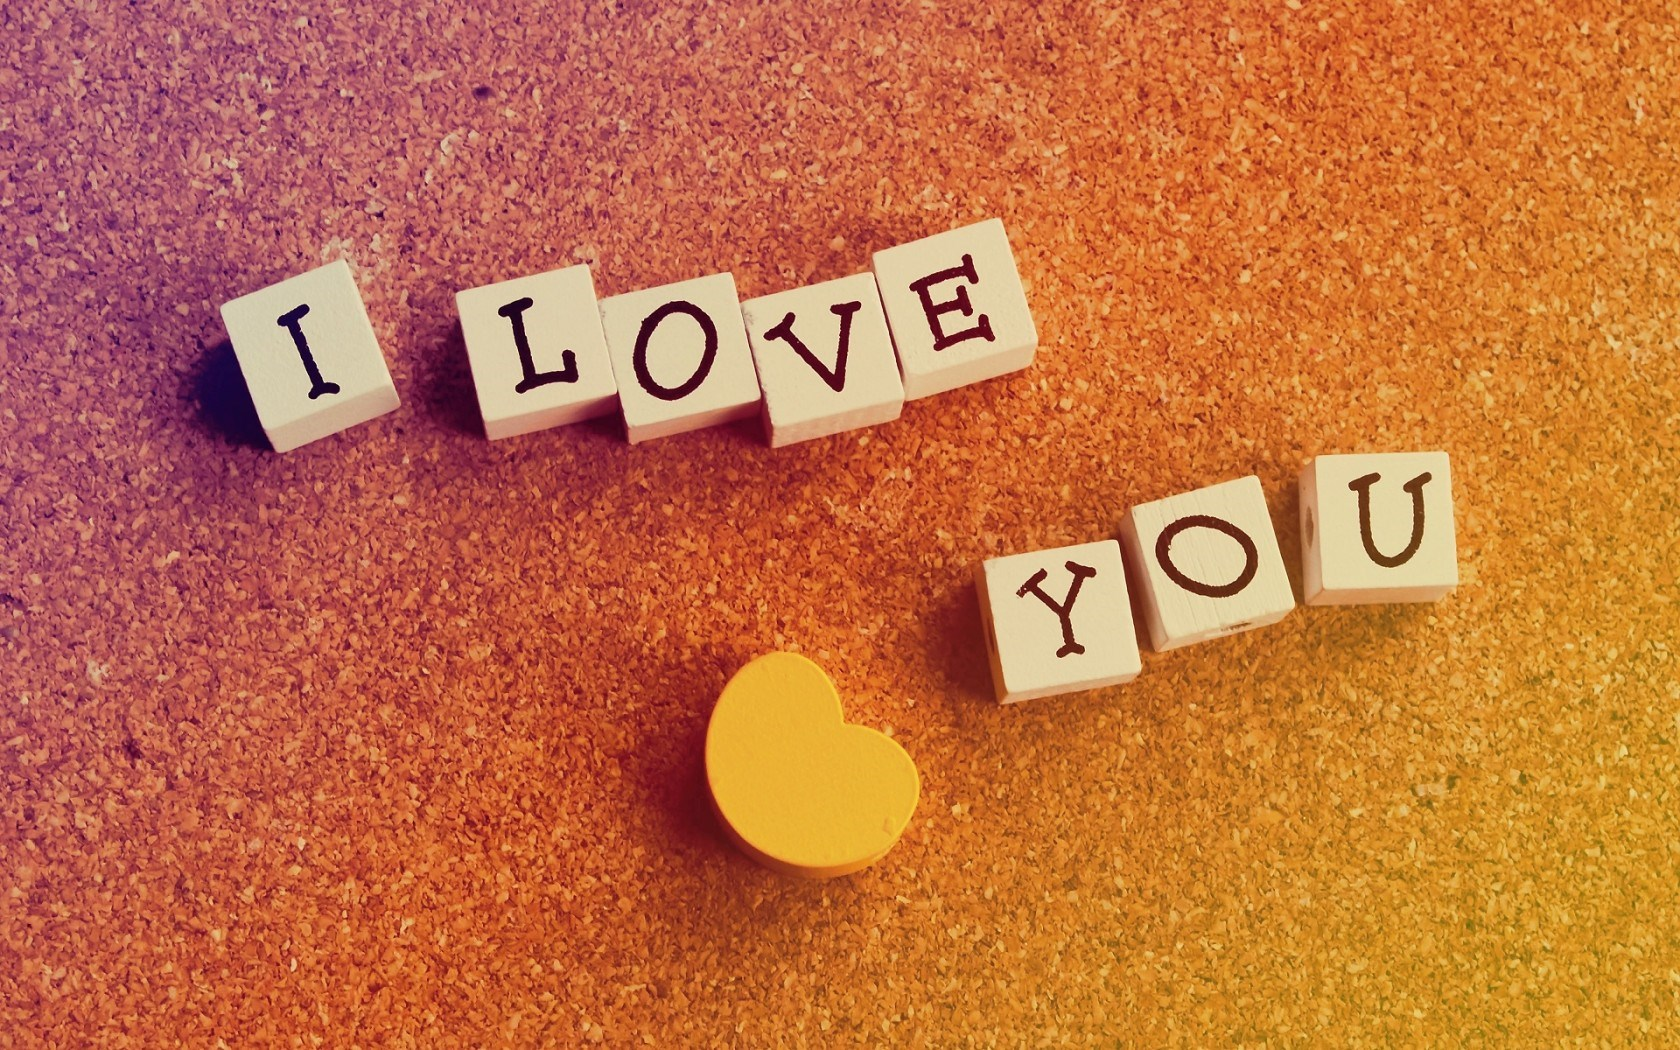 Wallpaper Hd 3d I Love You : I Love You Wallpapers HD A17 - HD Desktop Wallpapers 4k HD